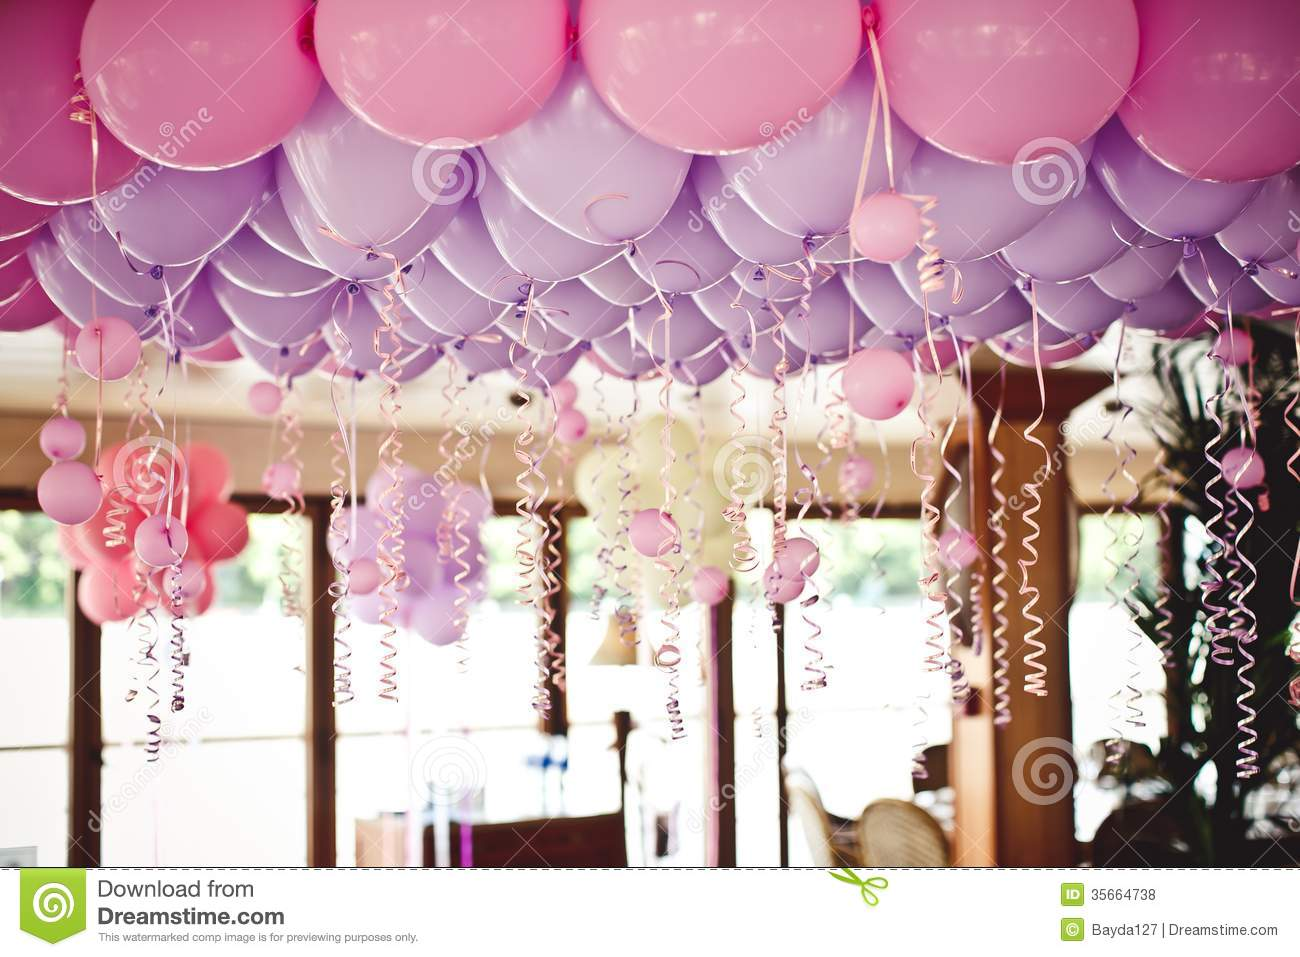 Balloons Under The Ceiling On Wedding Party Royalty Free Stock